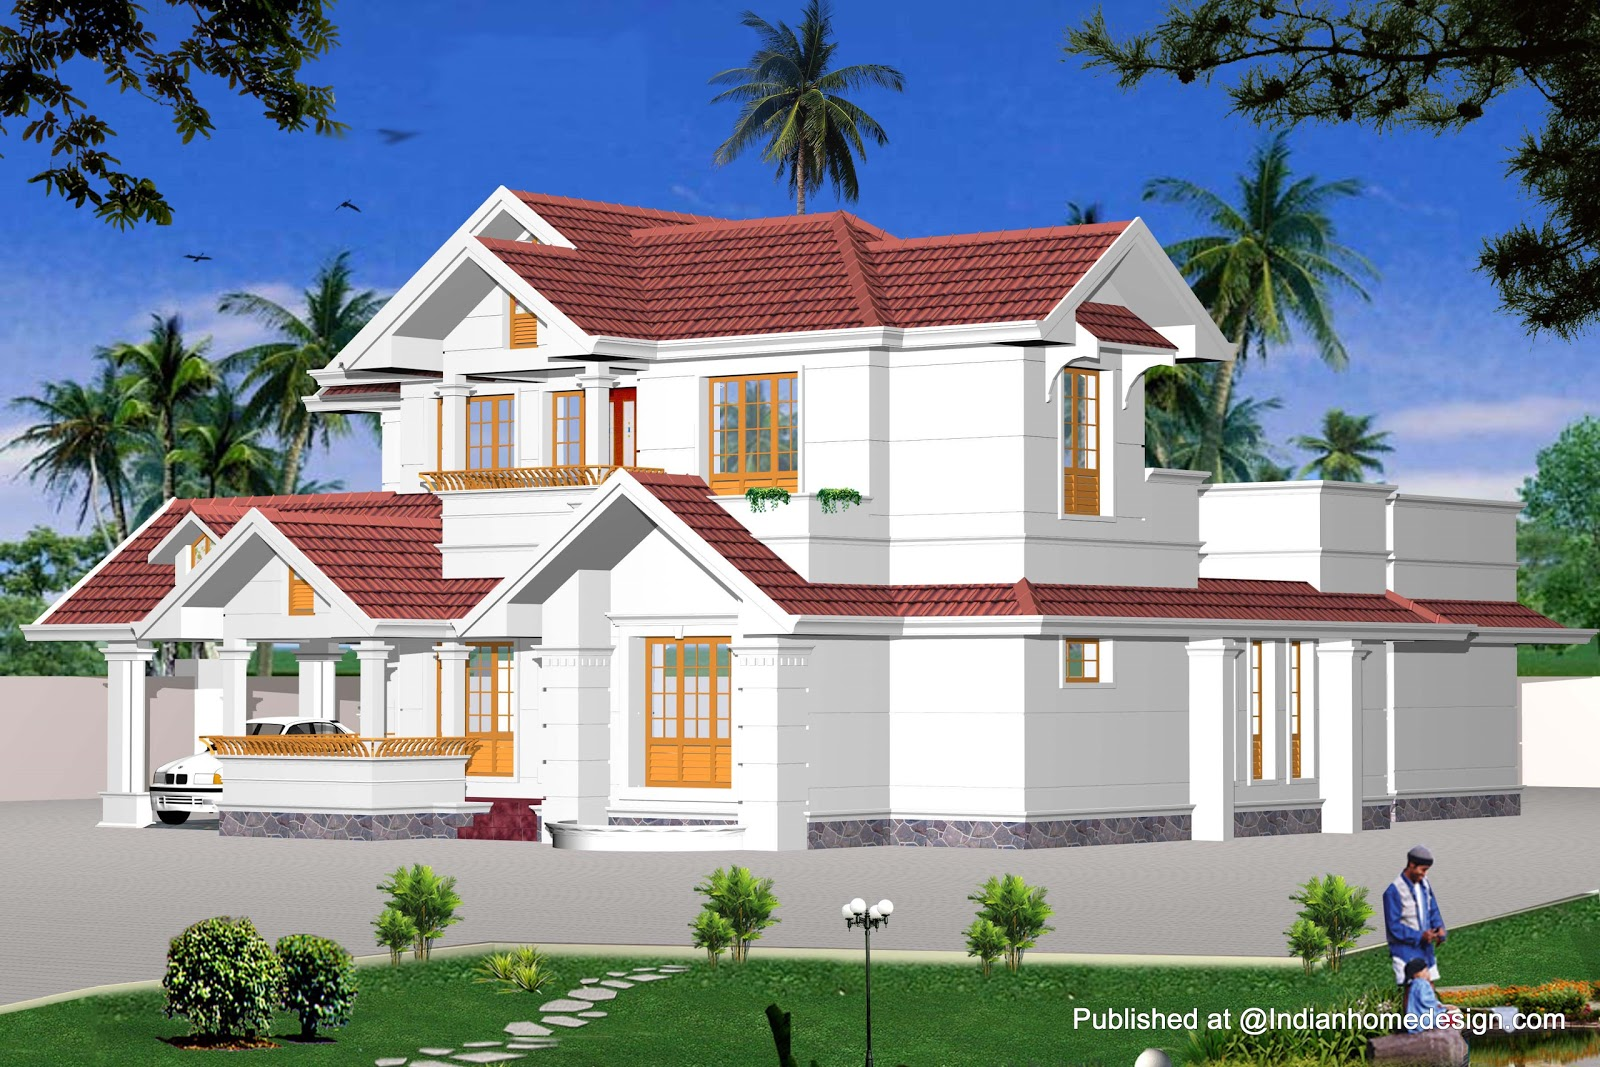 Design your own home home design ideas home interior for Design your own house online in india